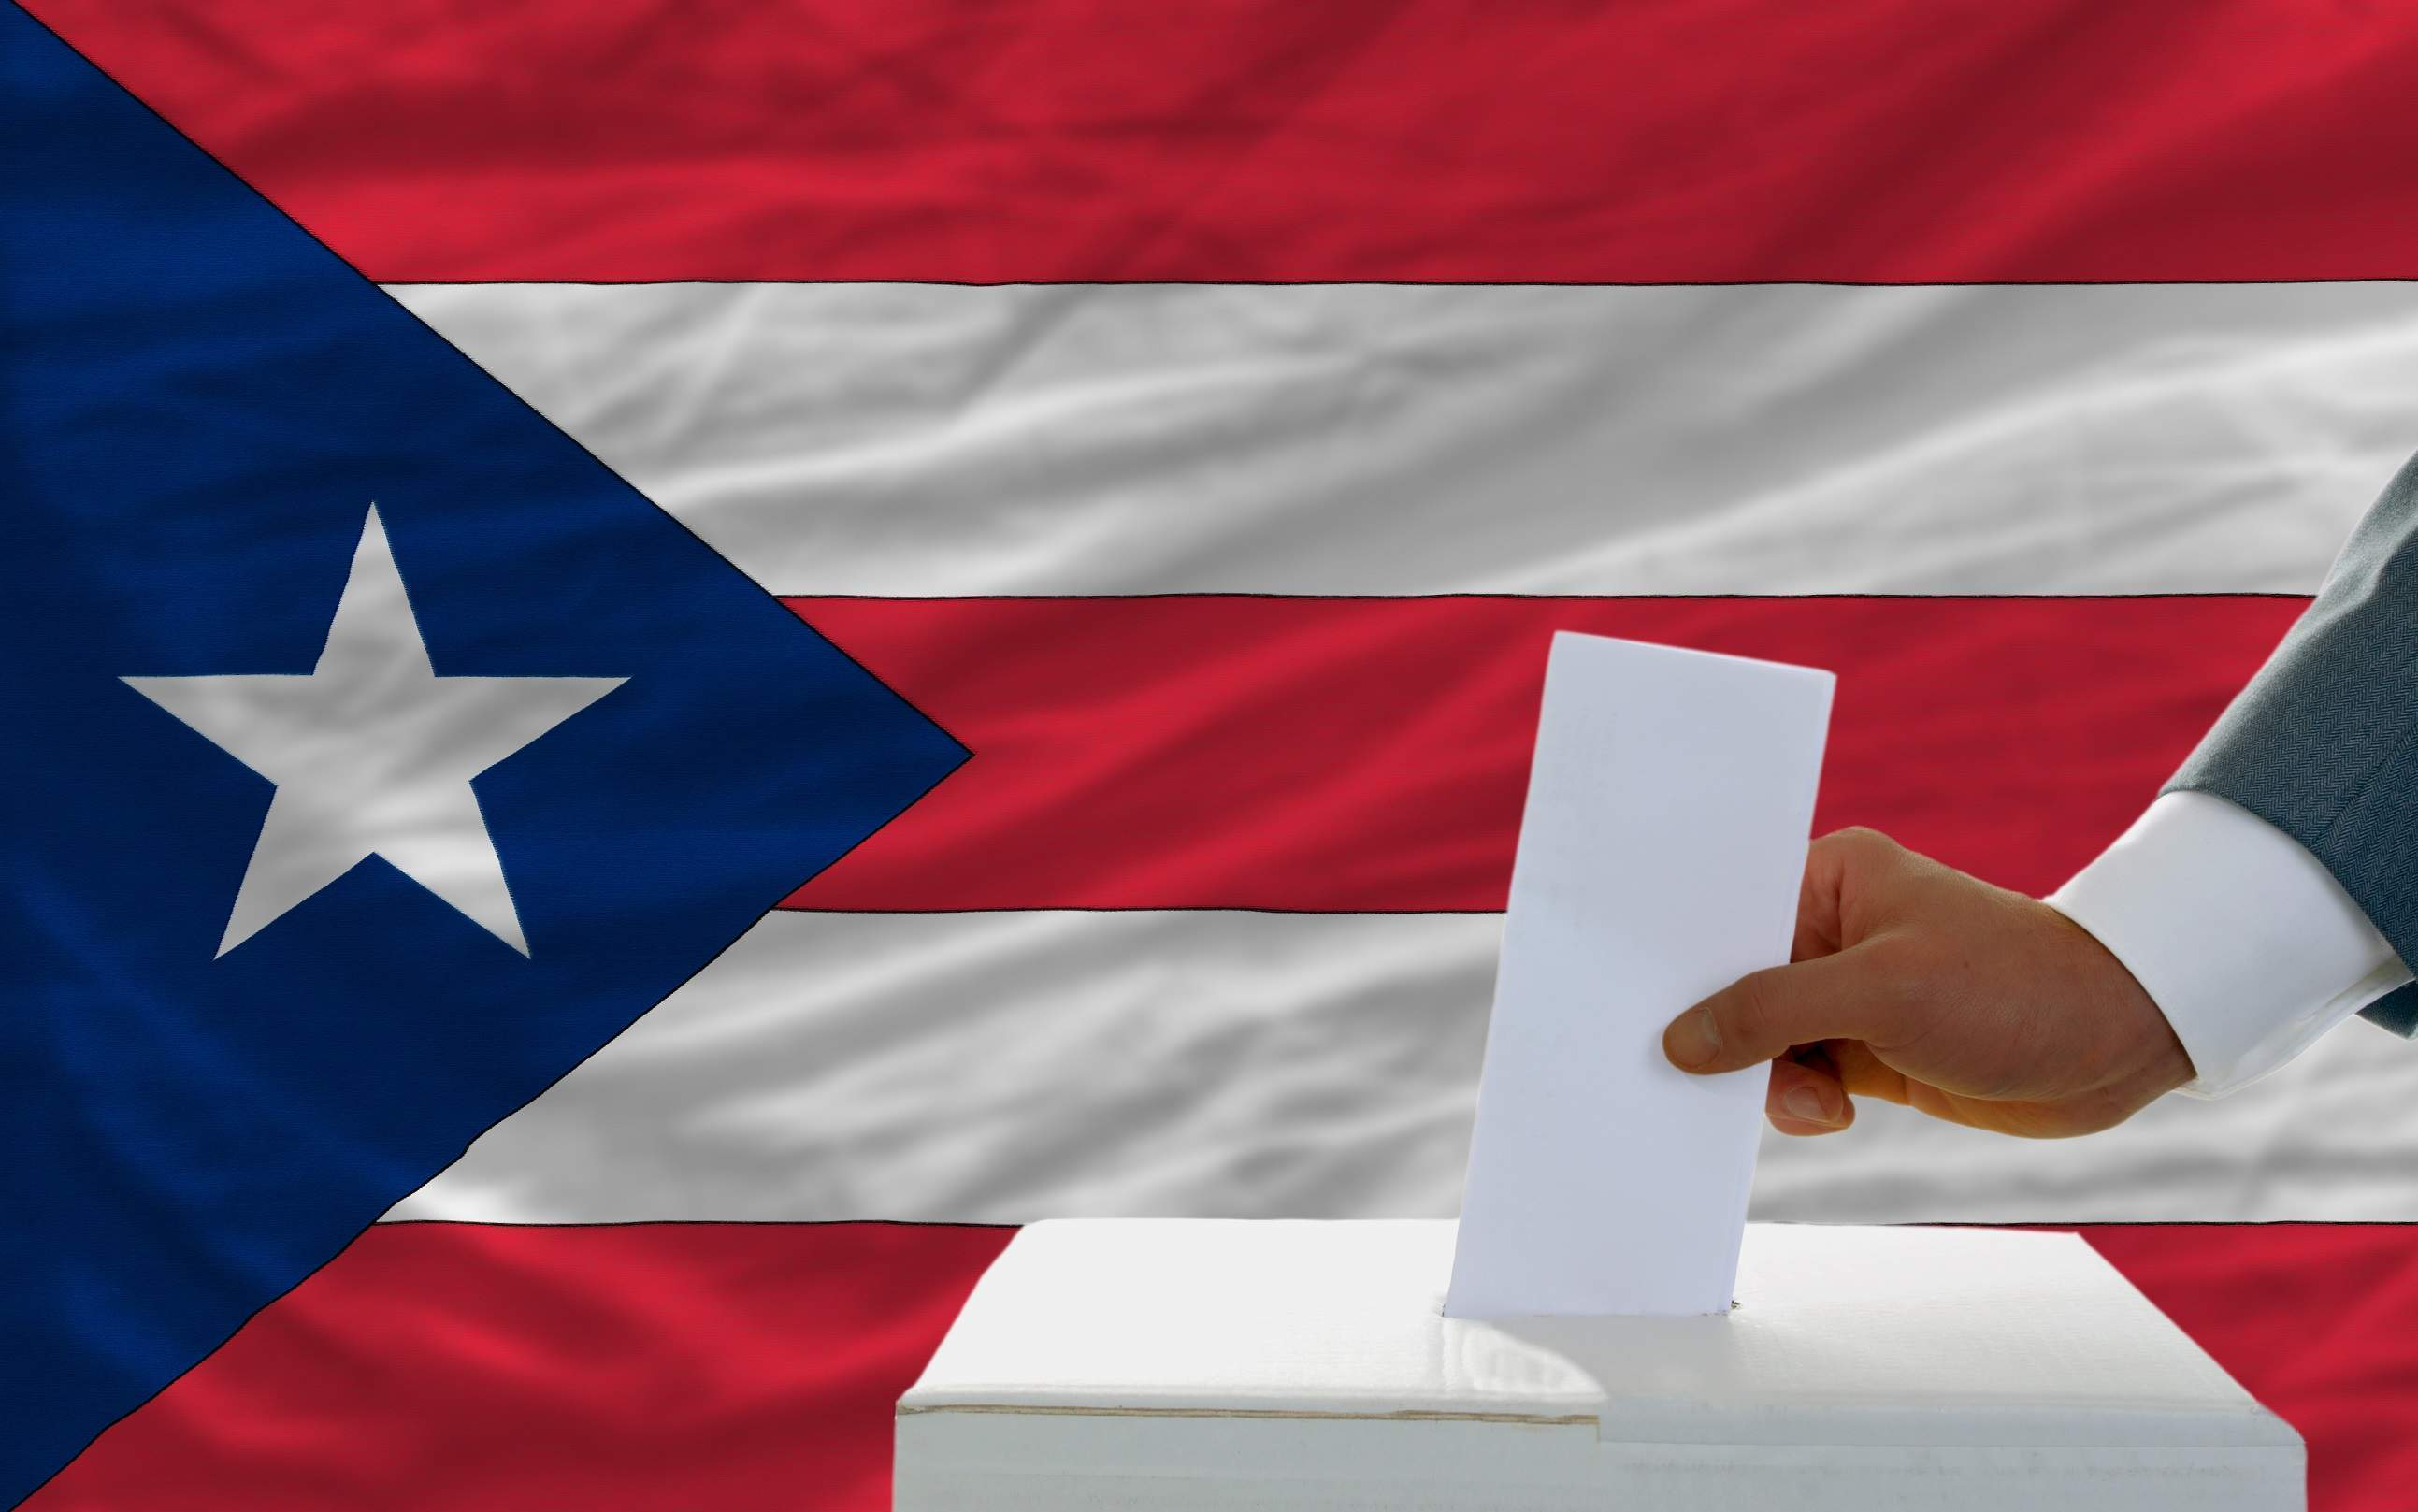 Puerto Rico votes to become the 51st US state – but will it actually happen?